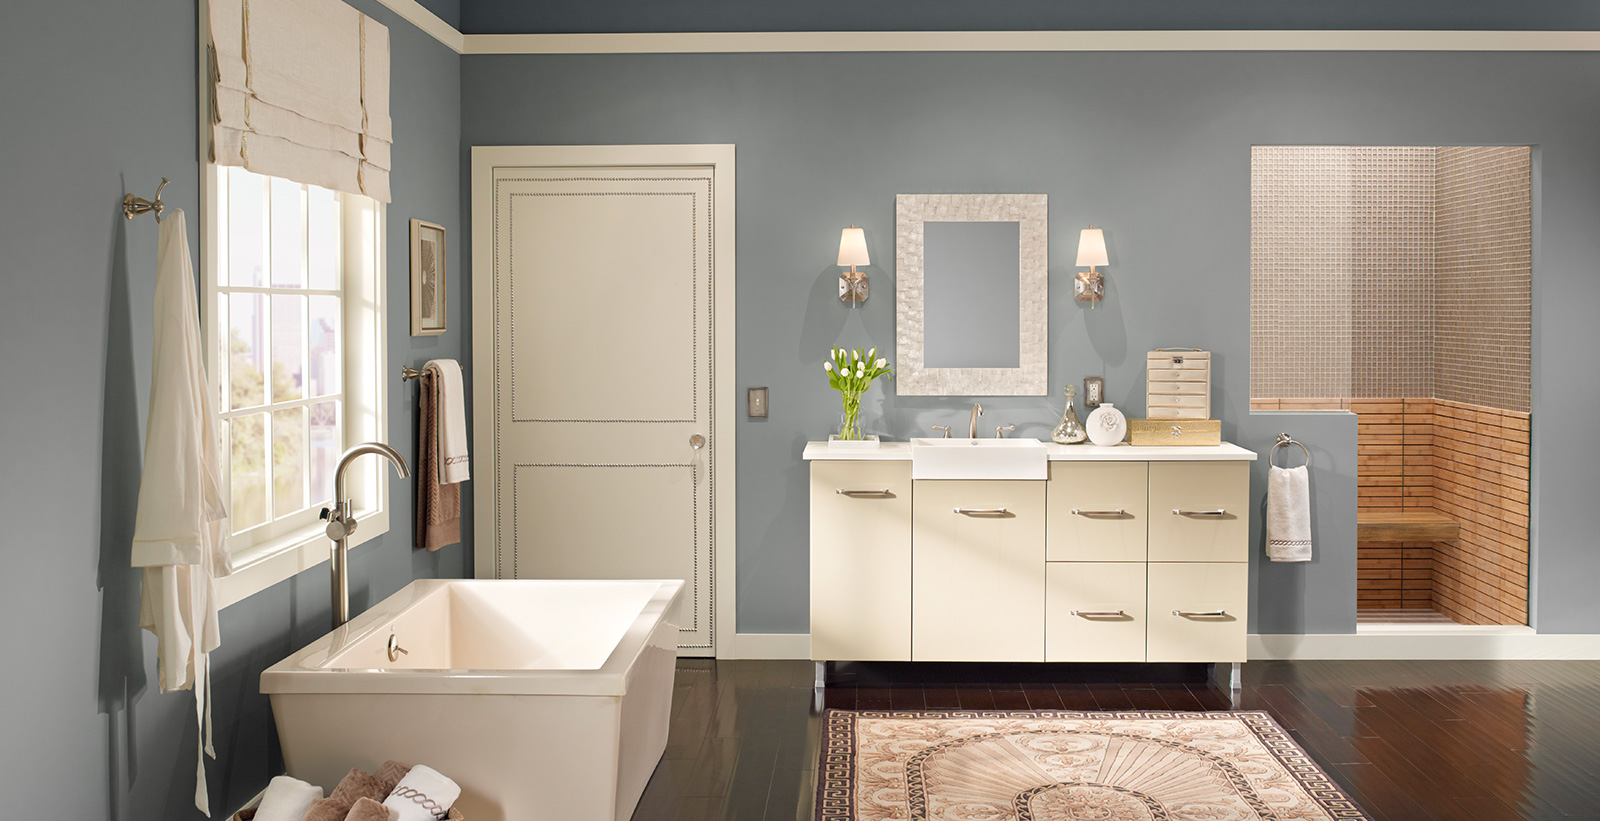 Relax styled bathroom with blue-gray walls and white trim.